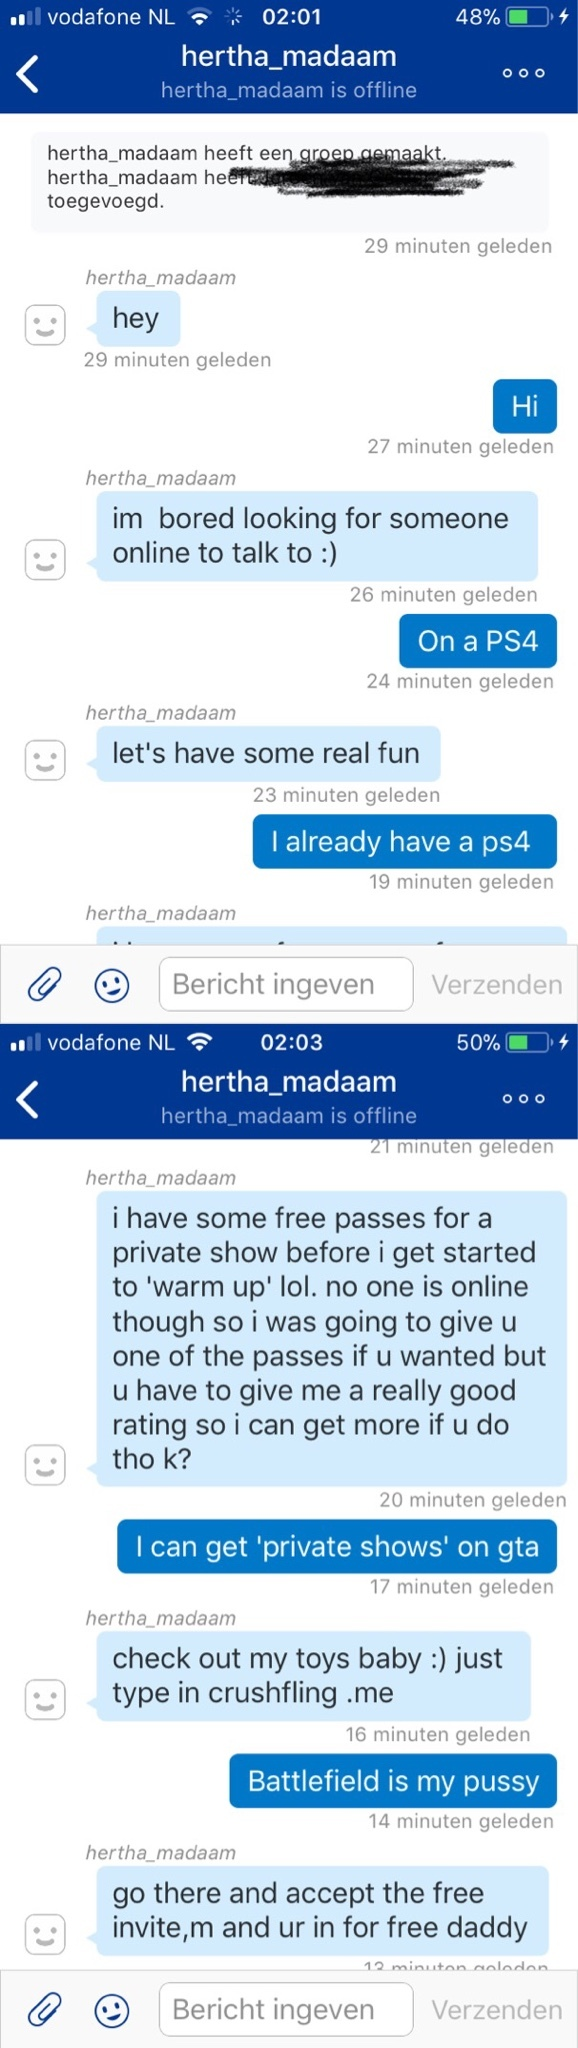 Free private shows are gay - meme